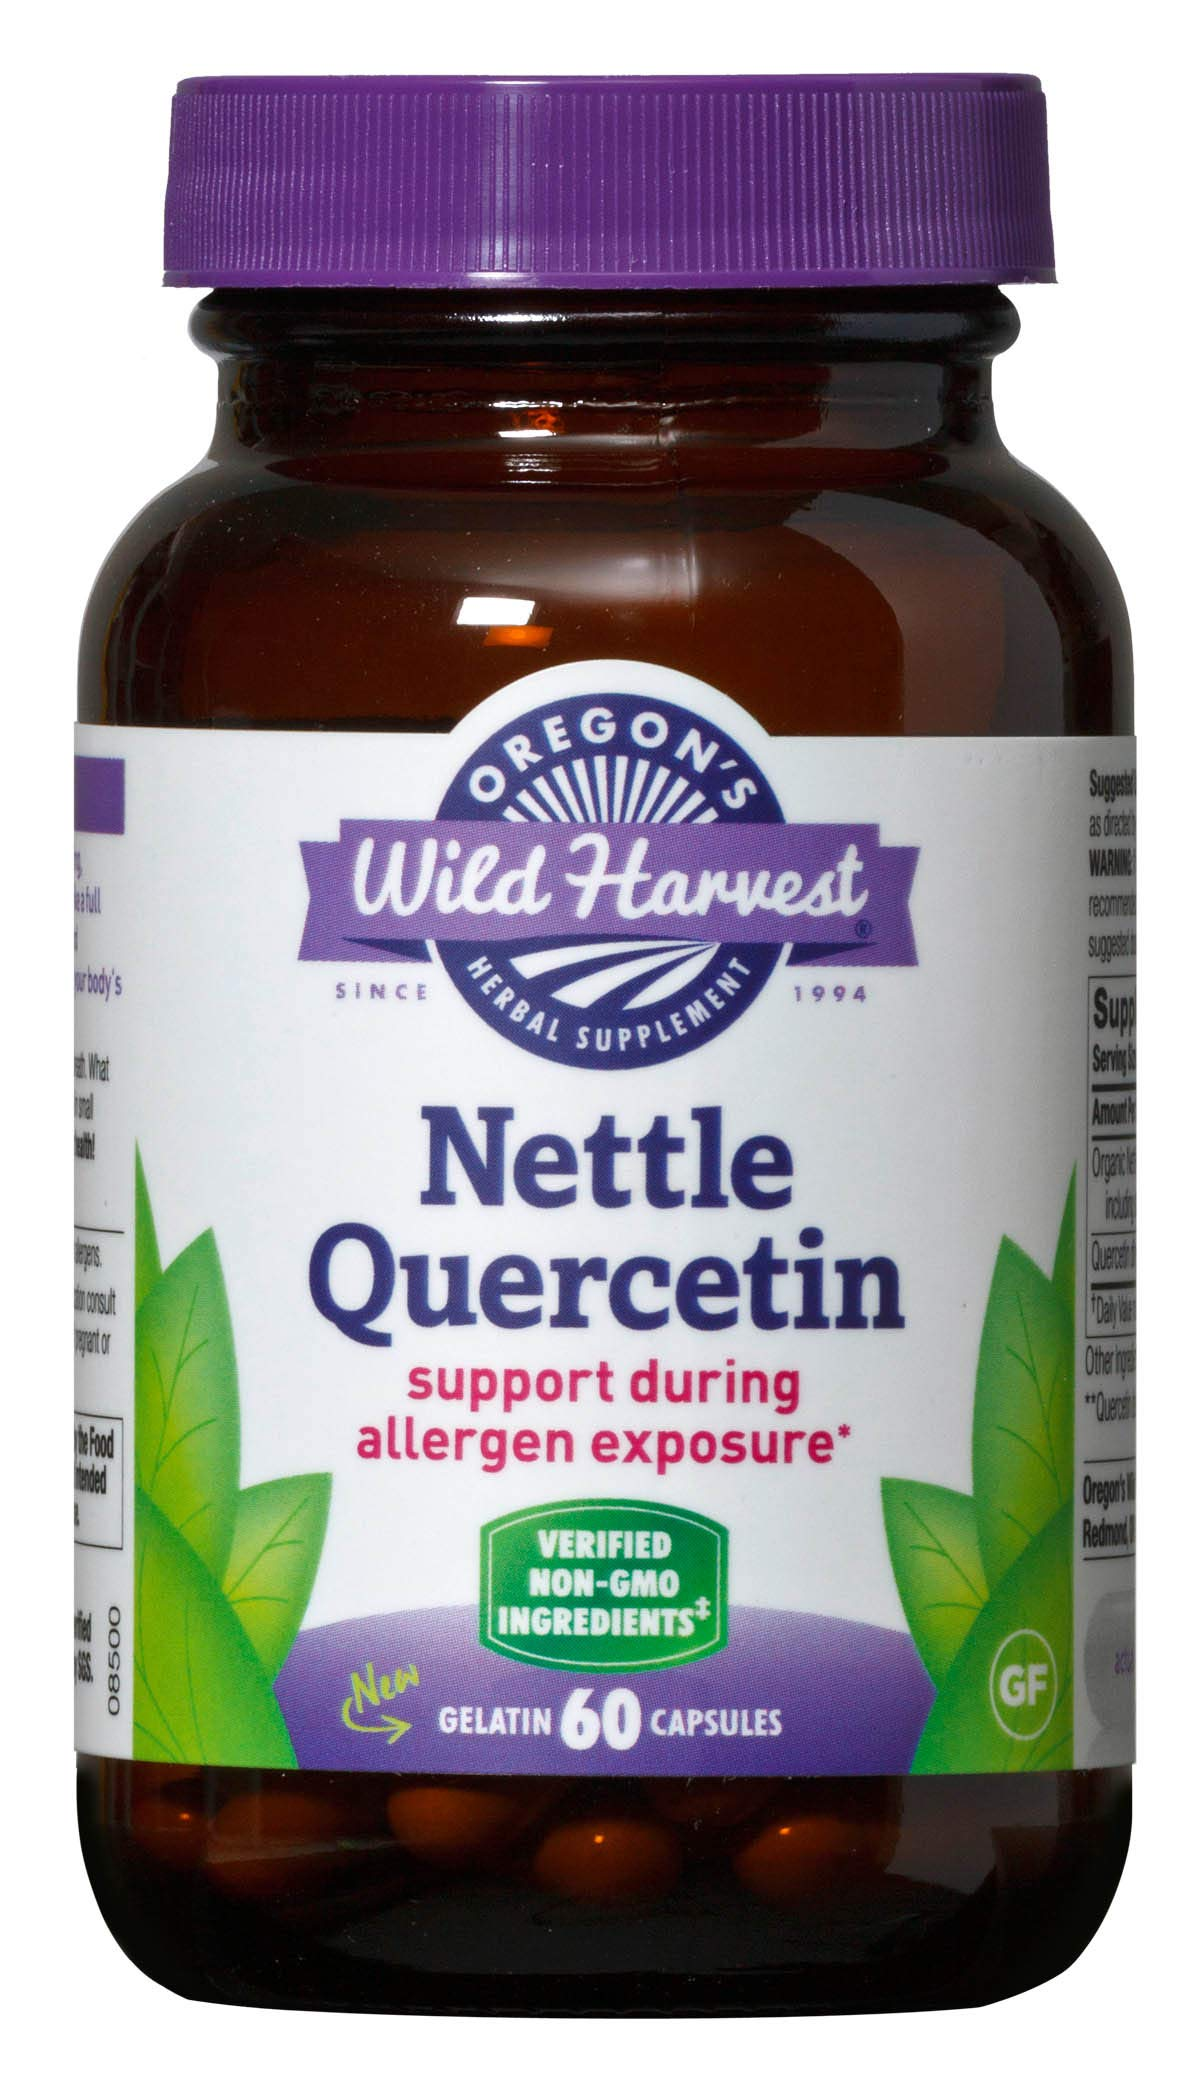 Oregon's Wild Harvest Nettle Quercetin Capsules, Non-GMO Organic Herbal Supplements (Packaging May Vary), 60 Count